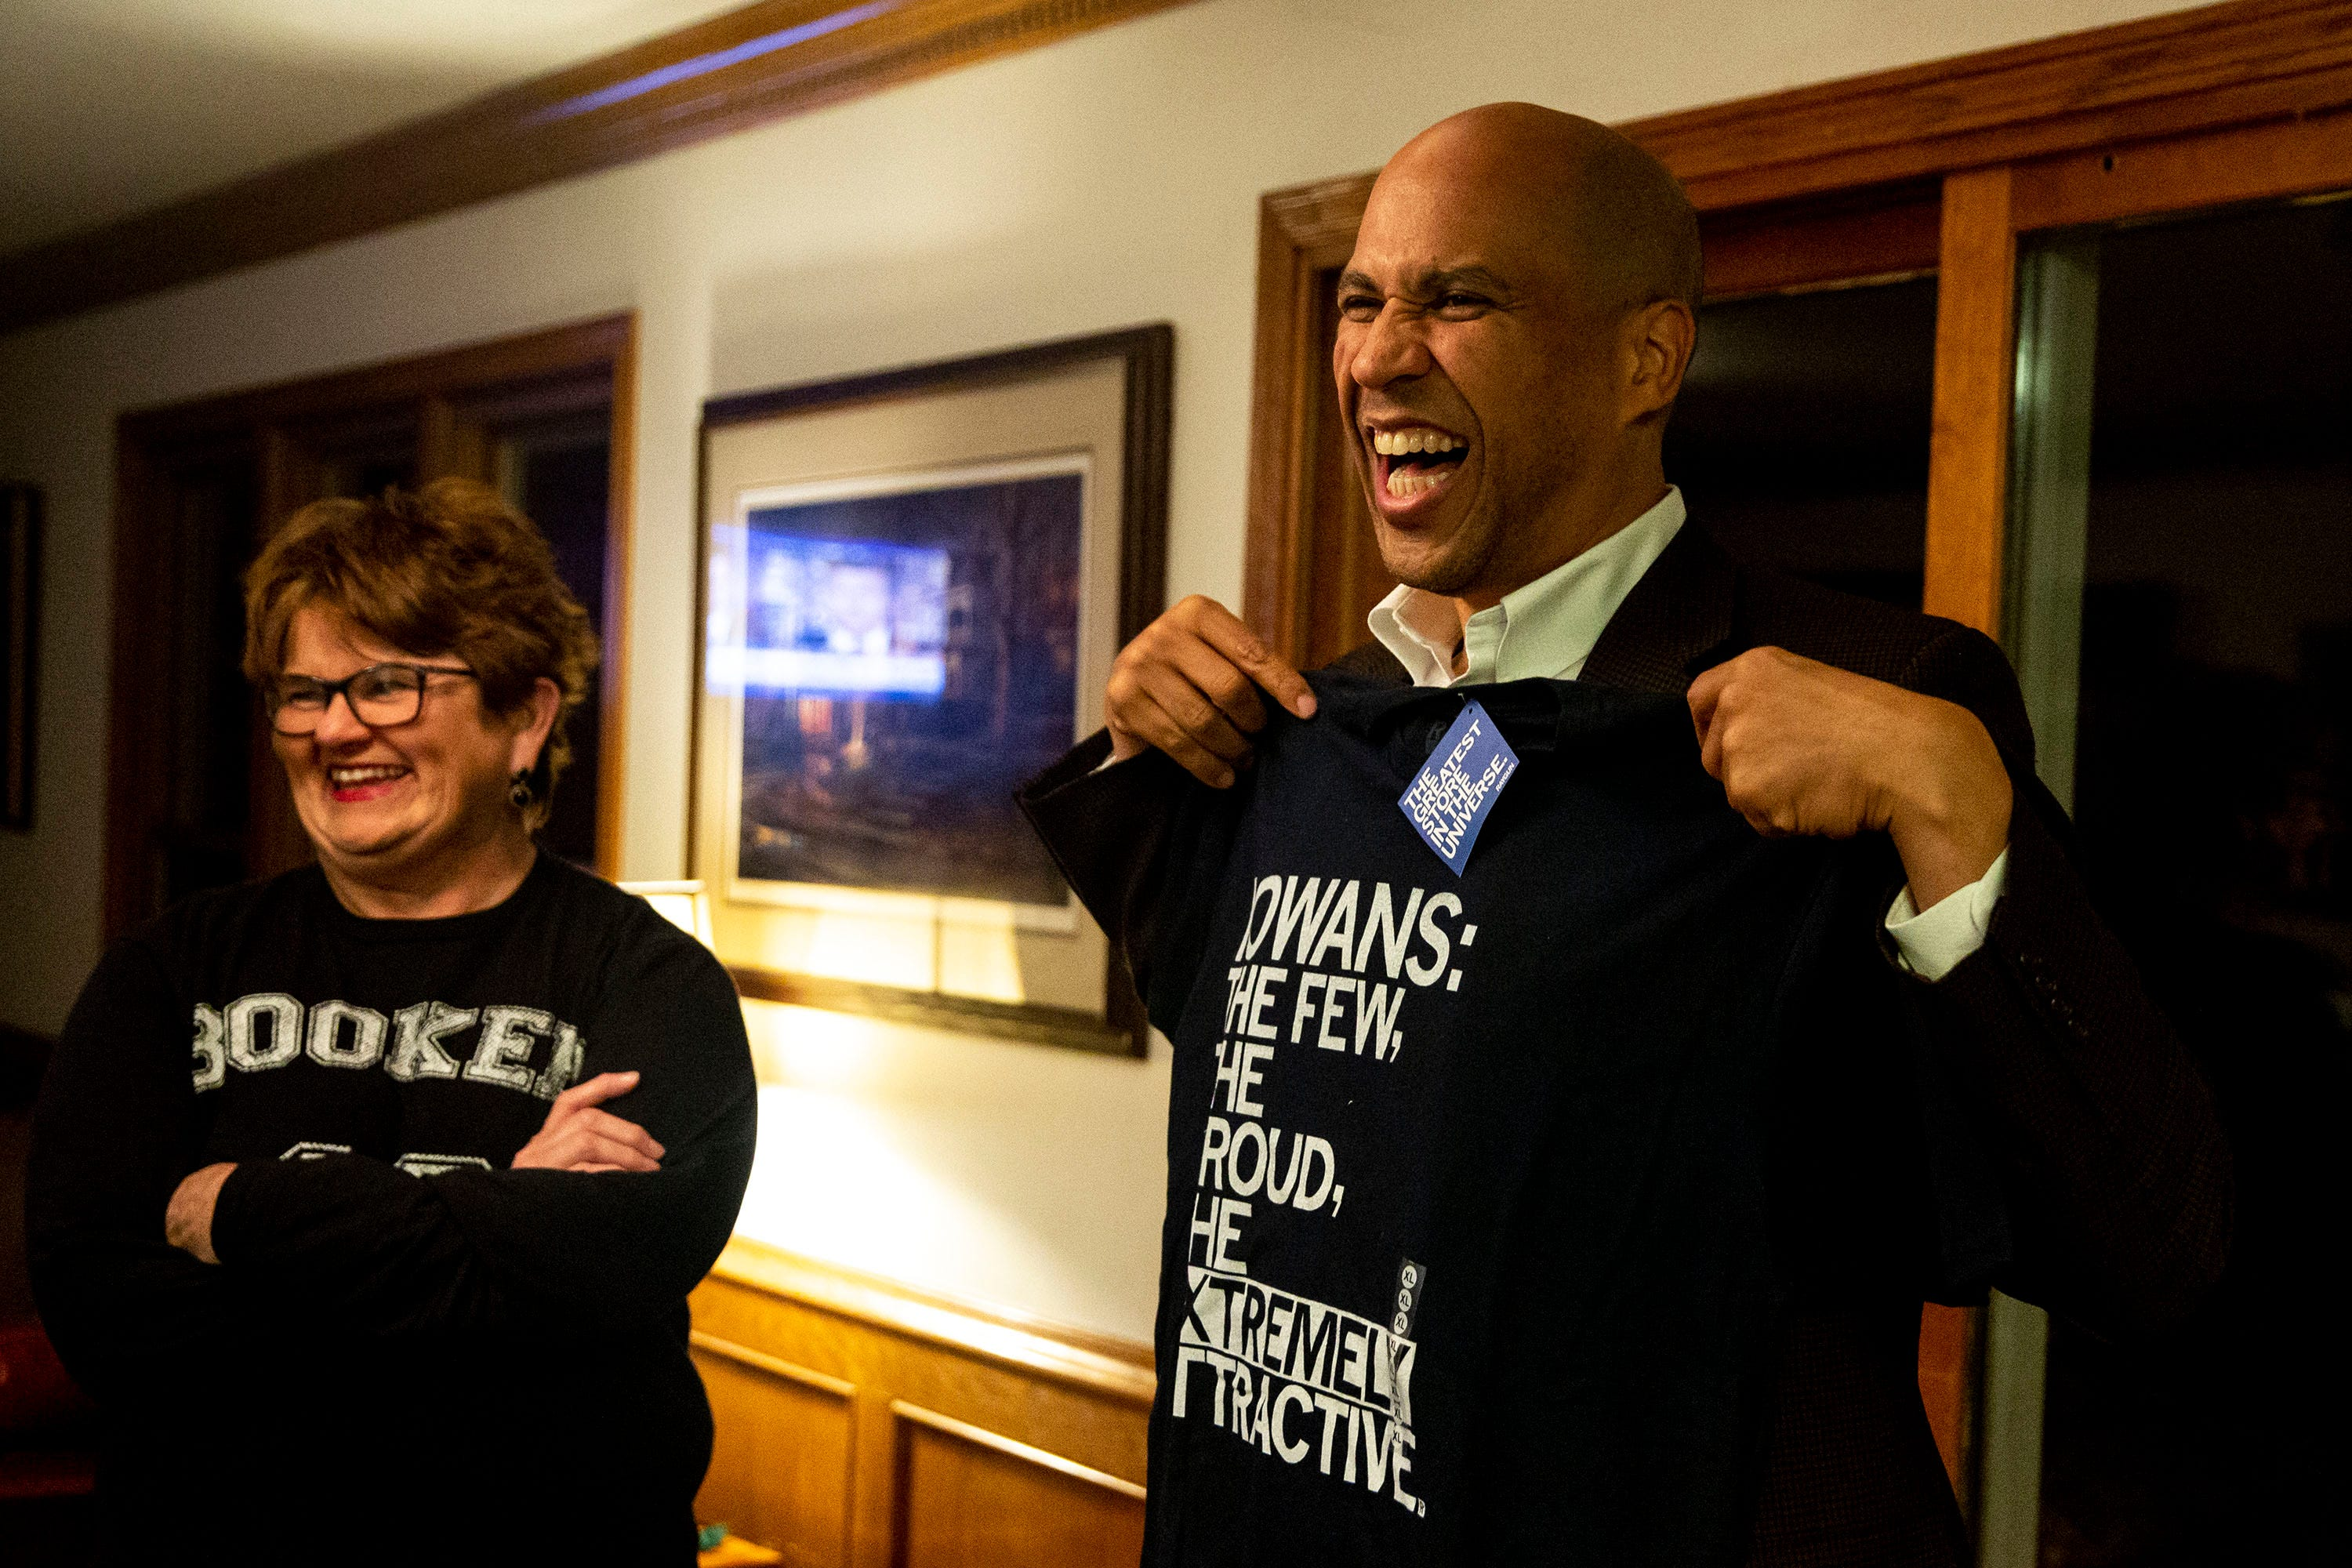 Photos: Cory Booker skips hotel, stays with Iowans instead